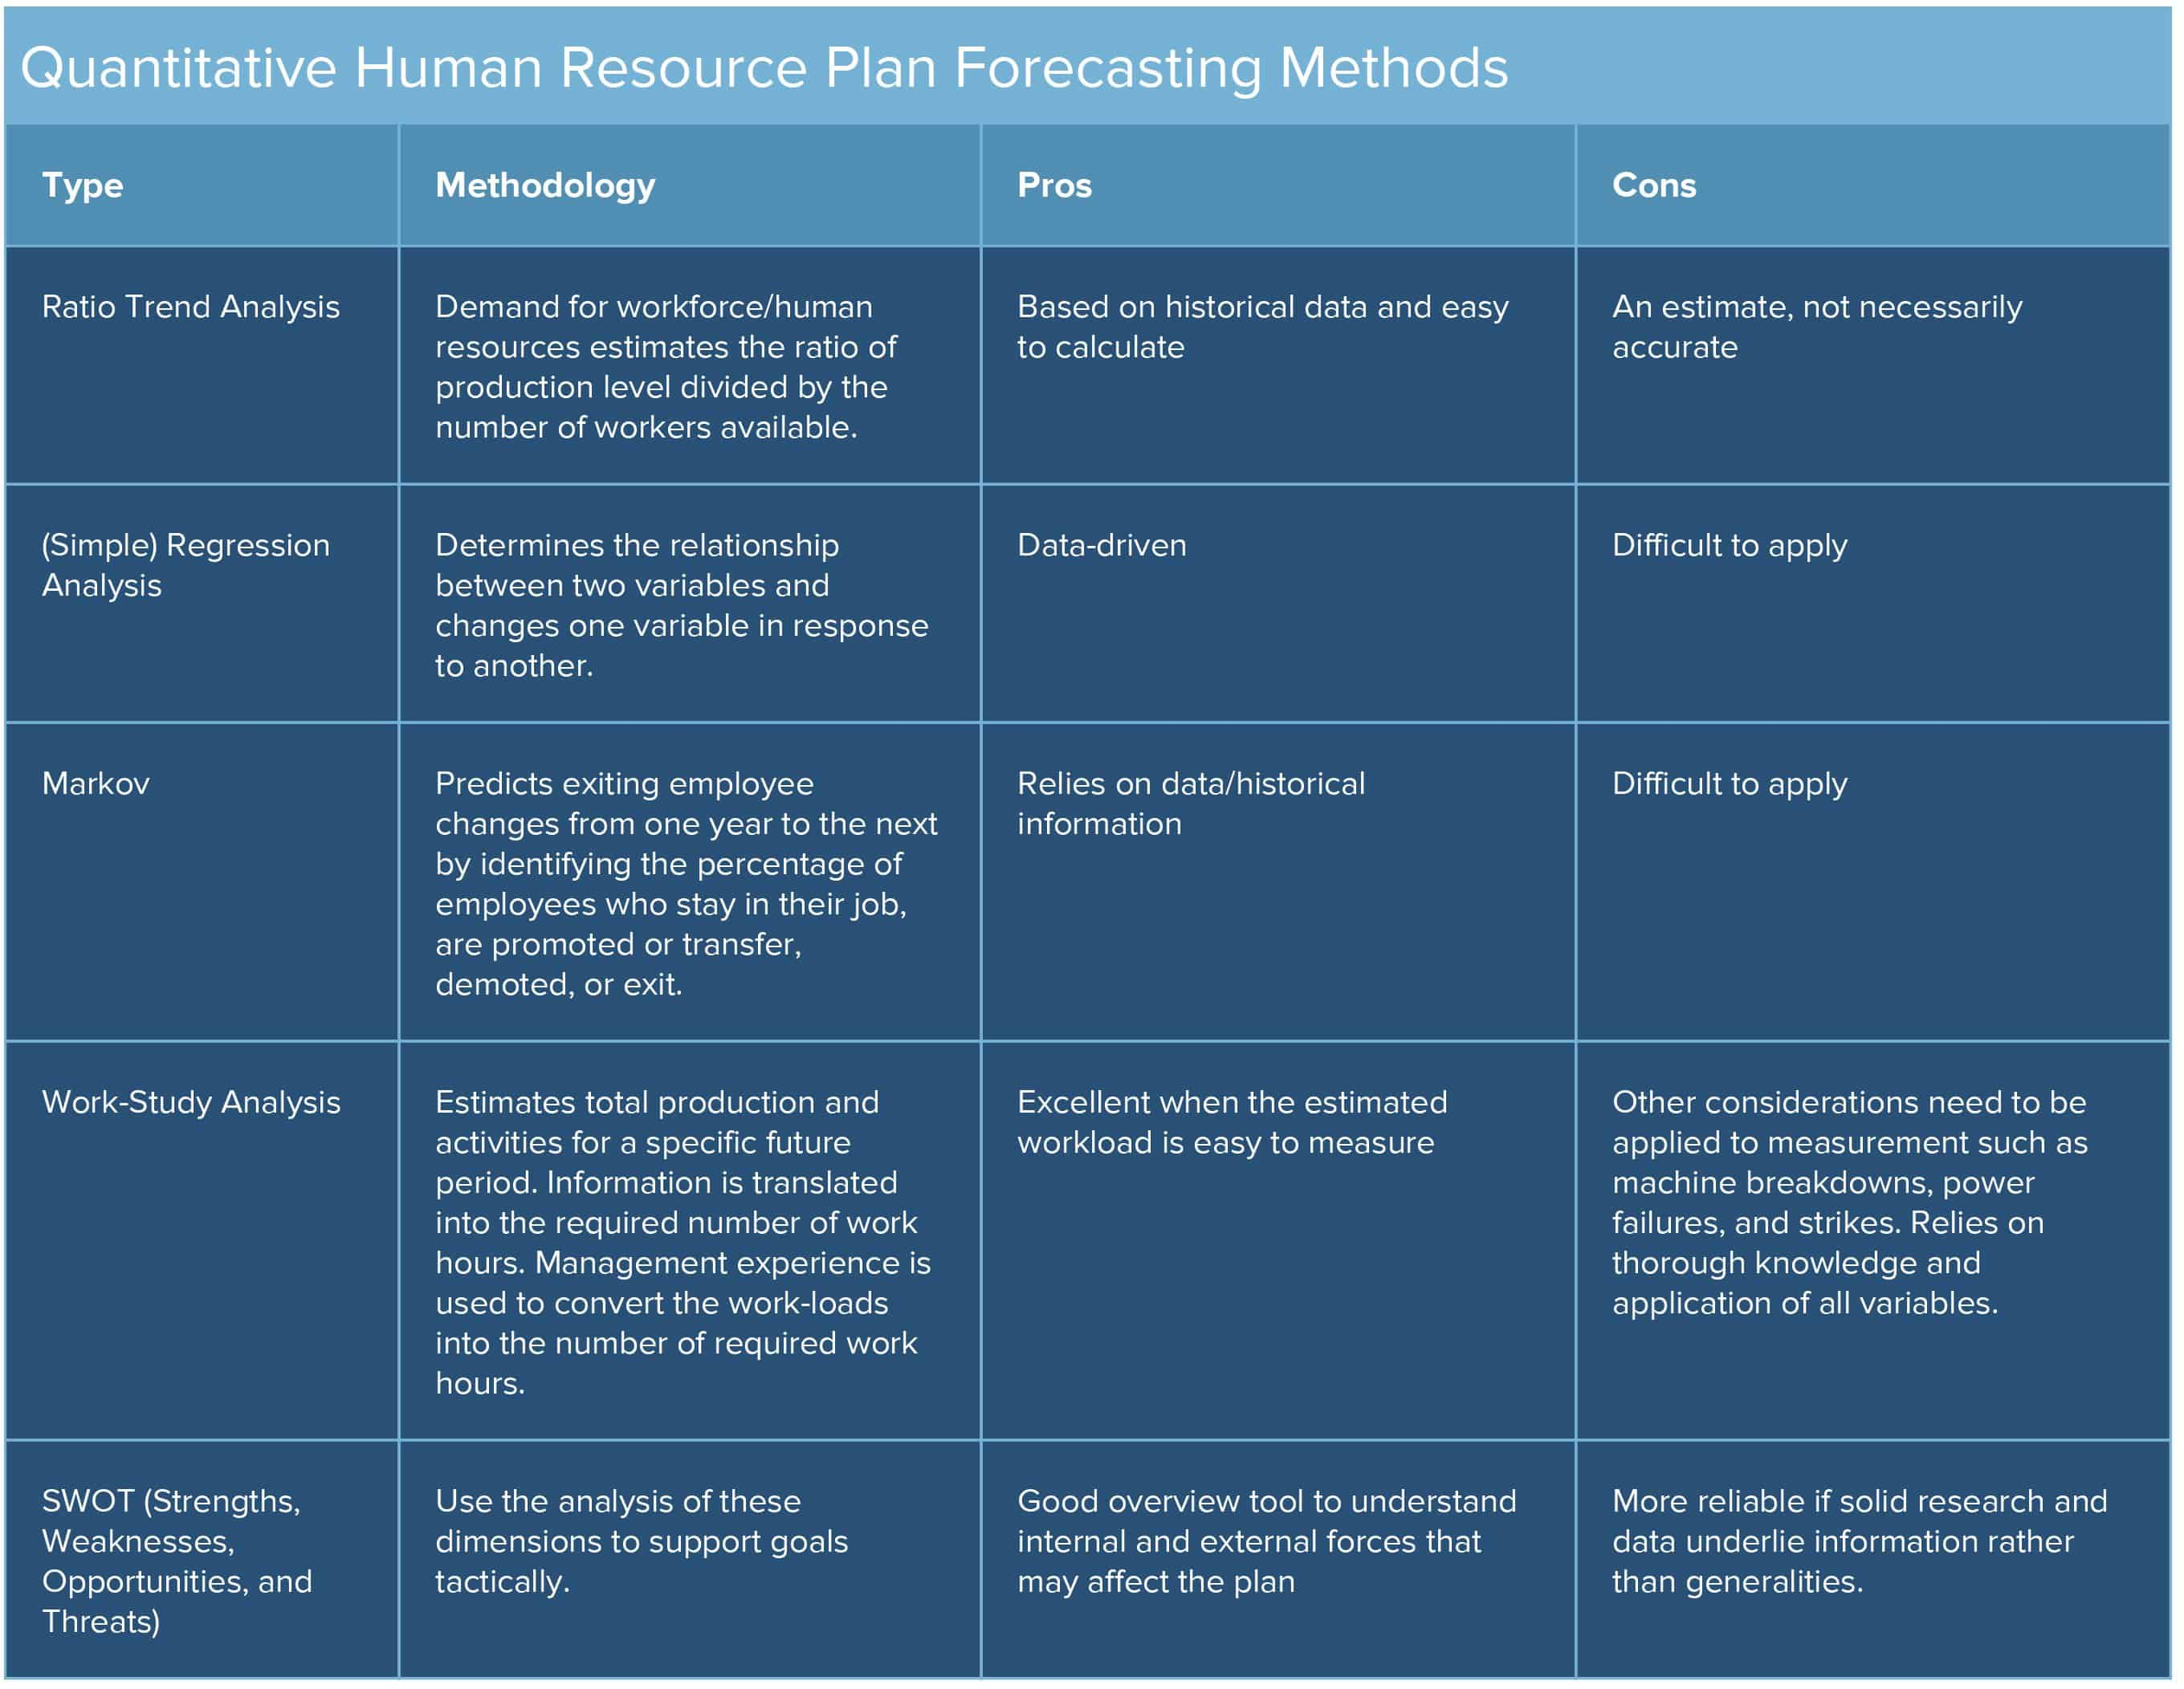 Quantitative HR Plan Forecasting Methods